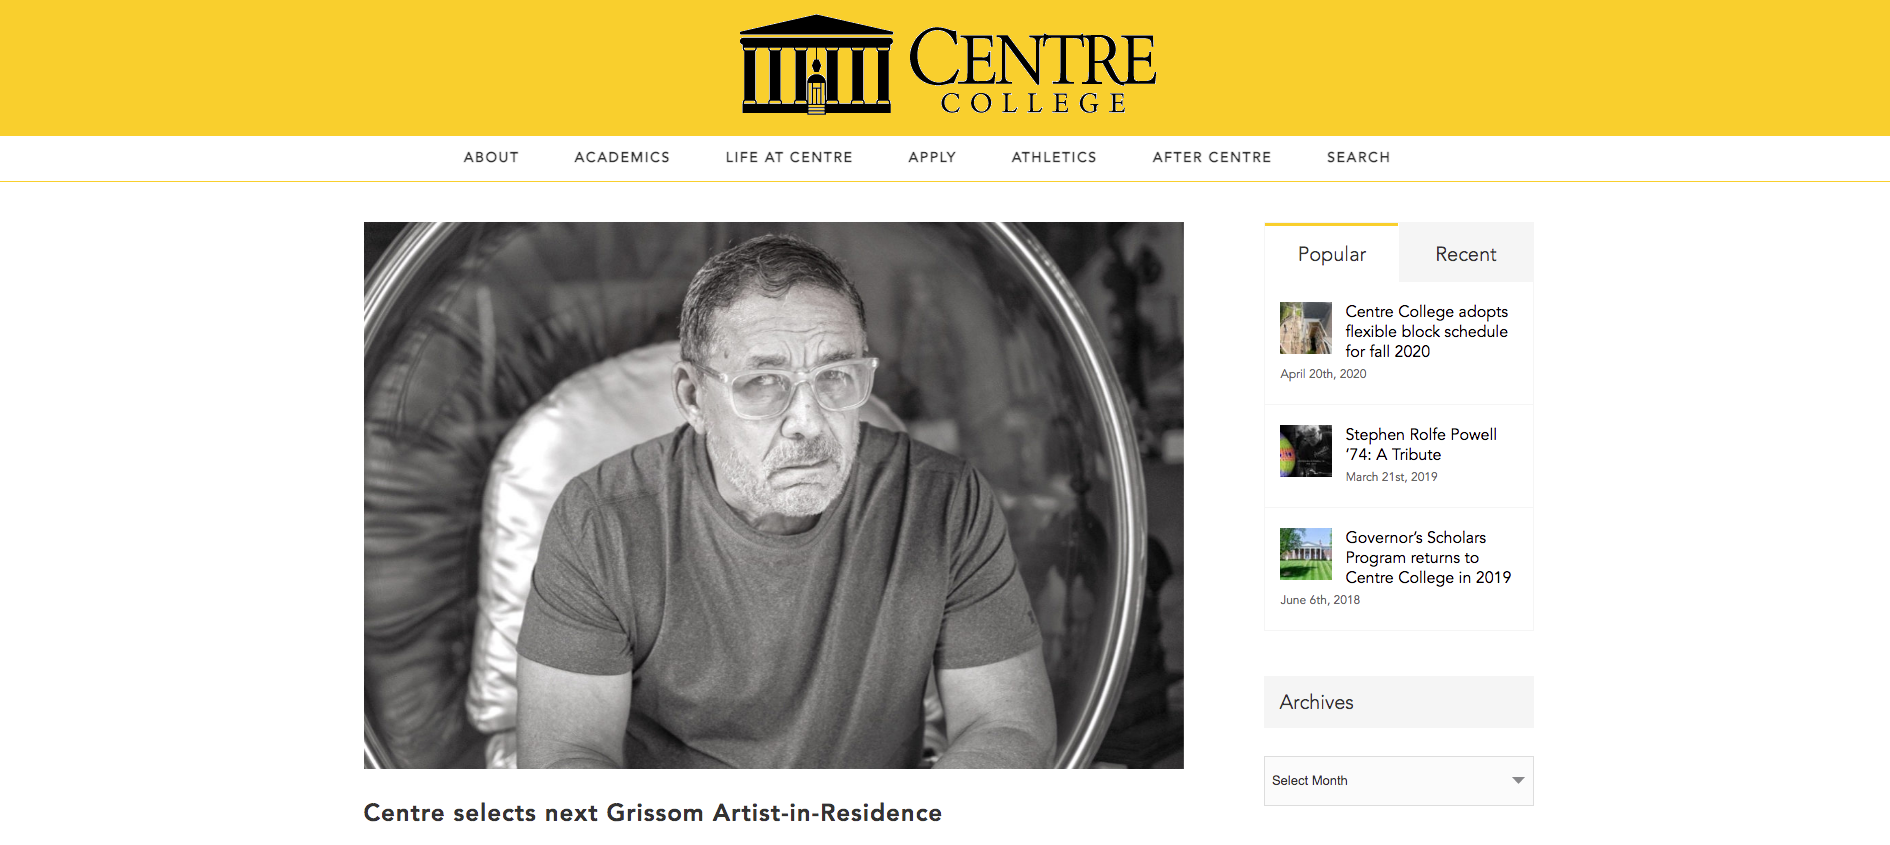 Centre College selects next Grissom Artist-in-Residence